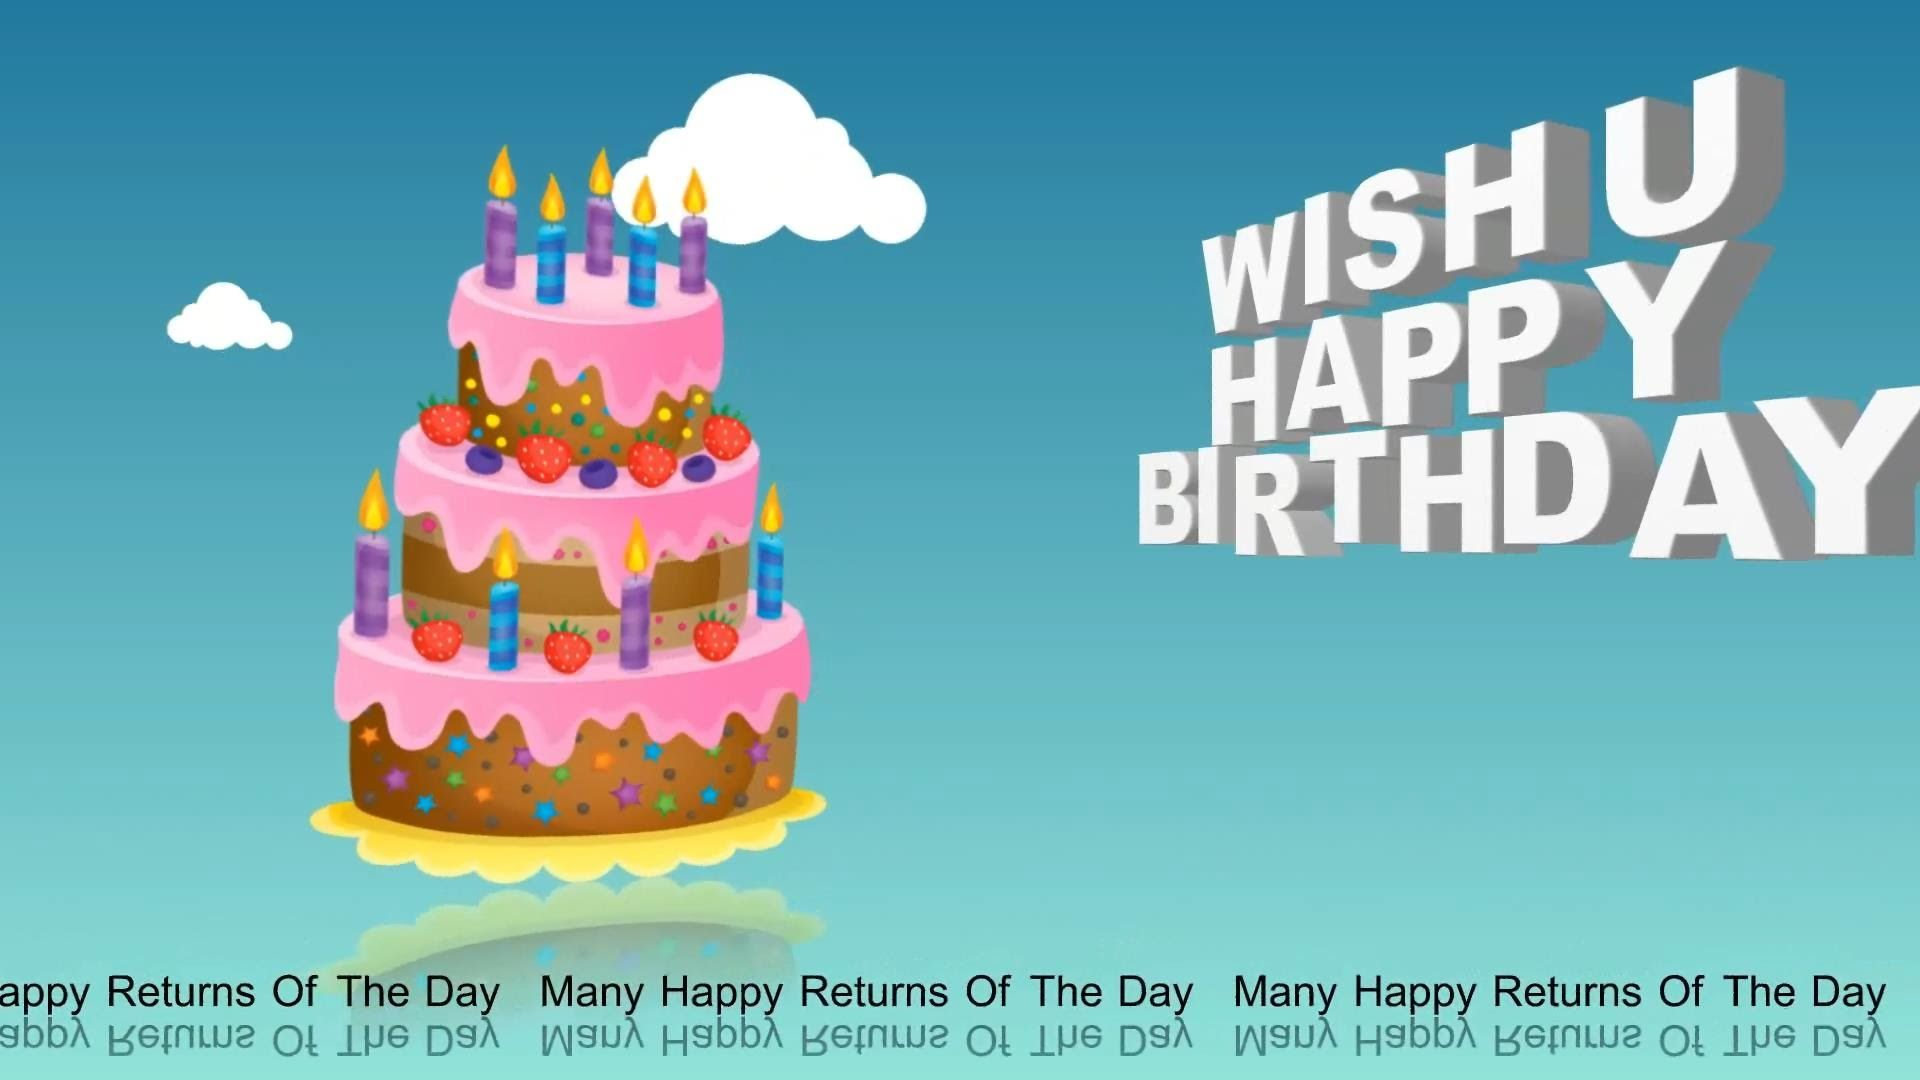 Happy Birthday Greetings Birthday Animation Birthday Whatsapp